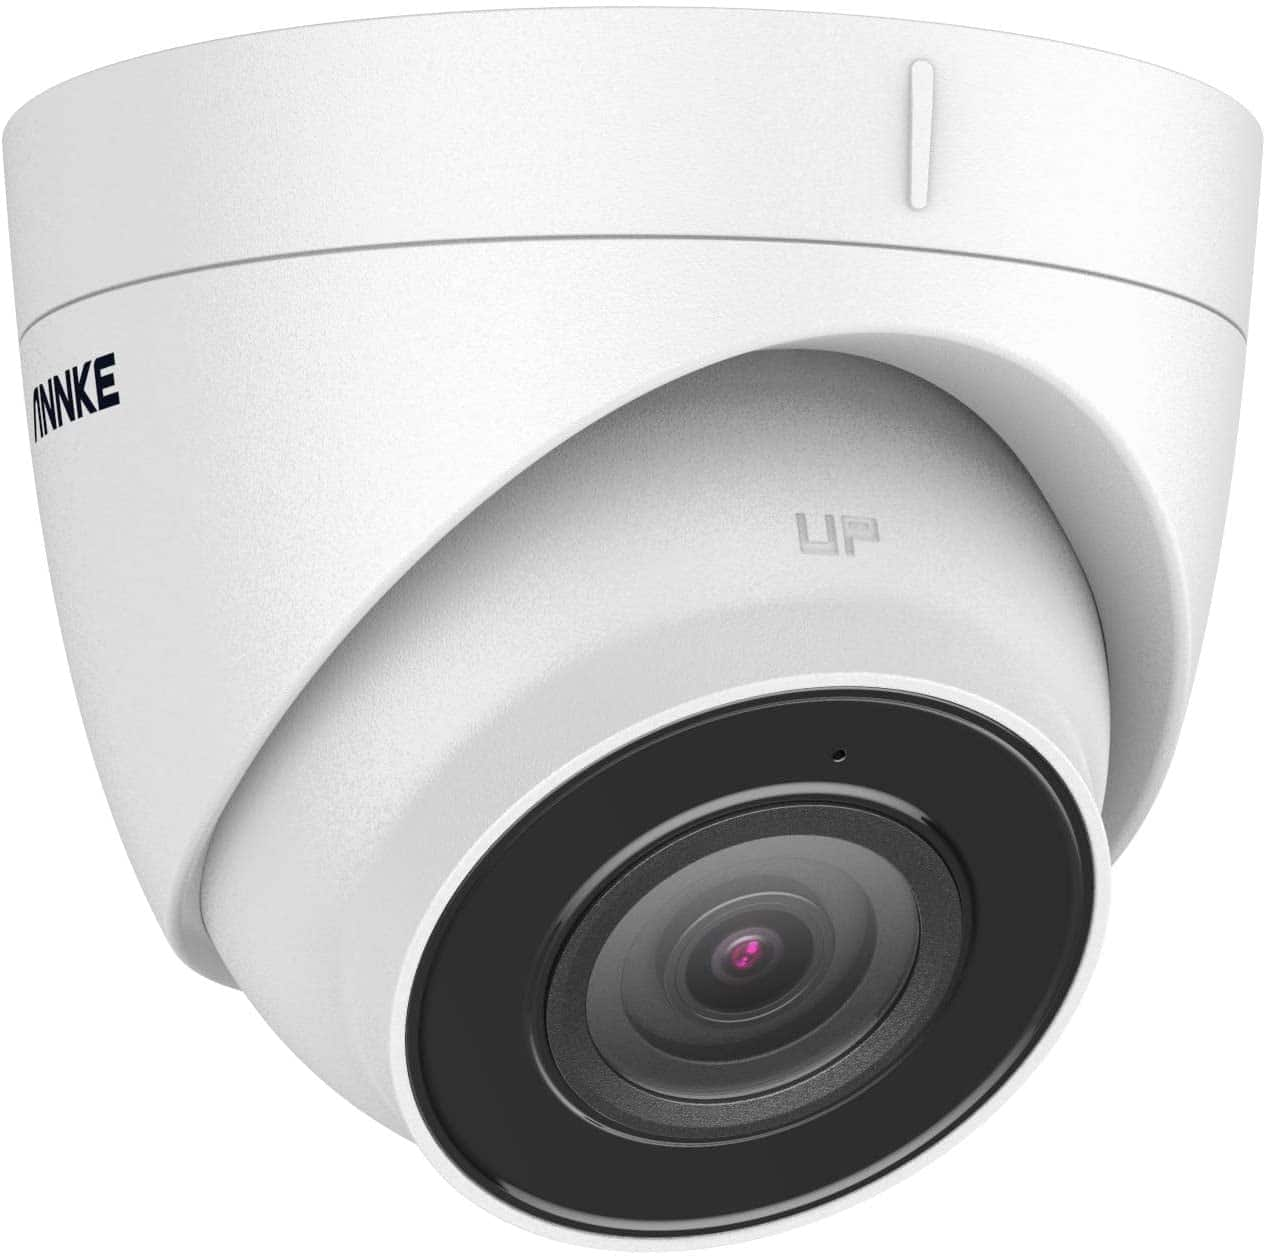 ANNKE C800 True 4K Ultra HD Outdoor PoE Turret IP Camera with Audio  $59.99